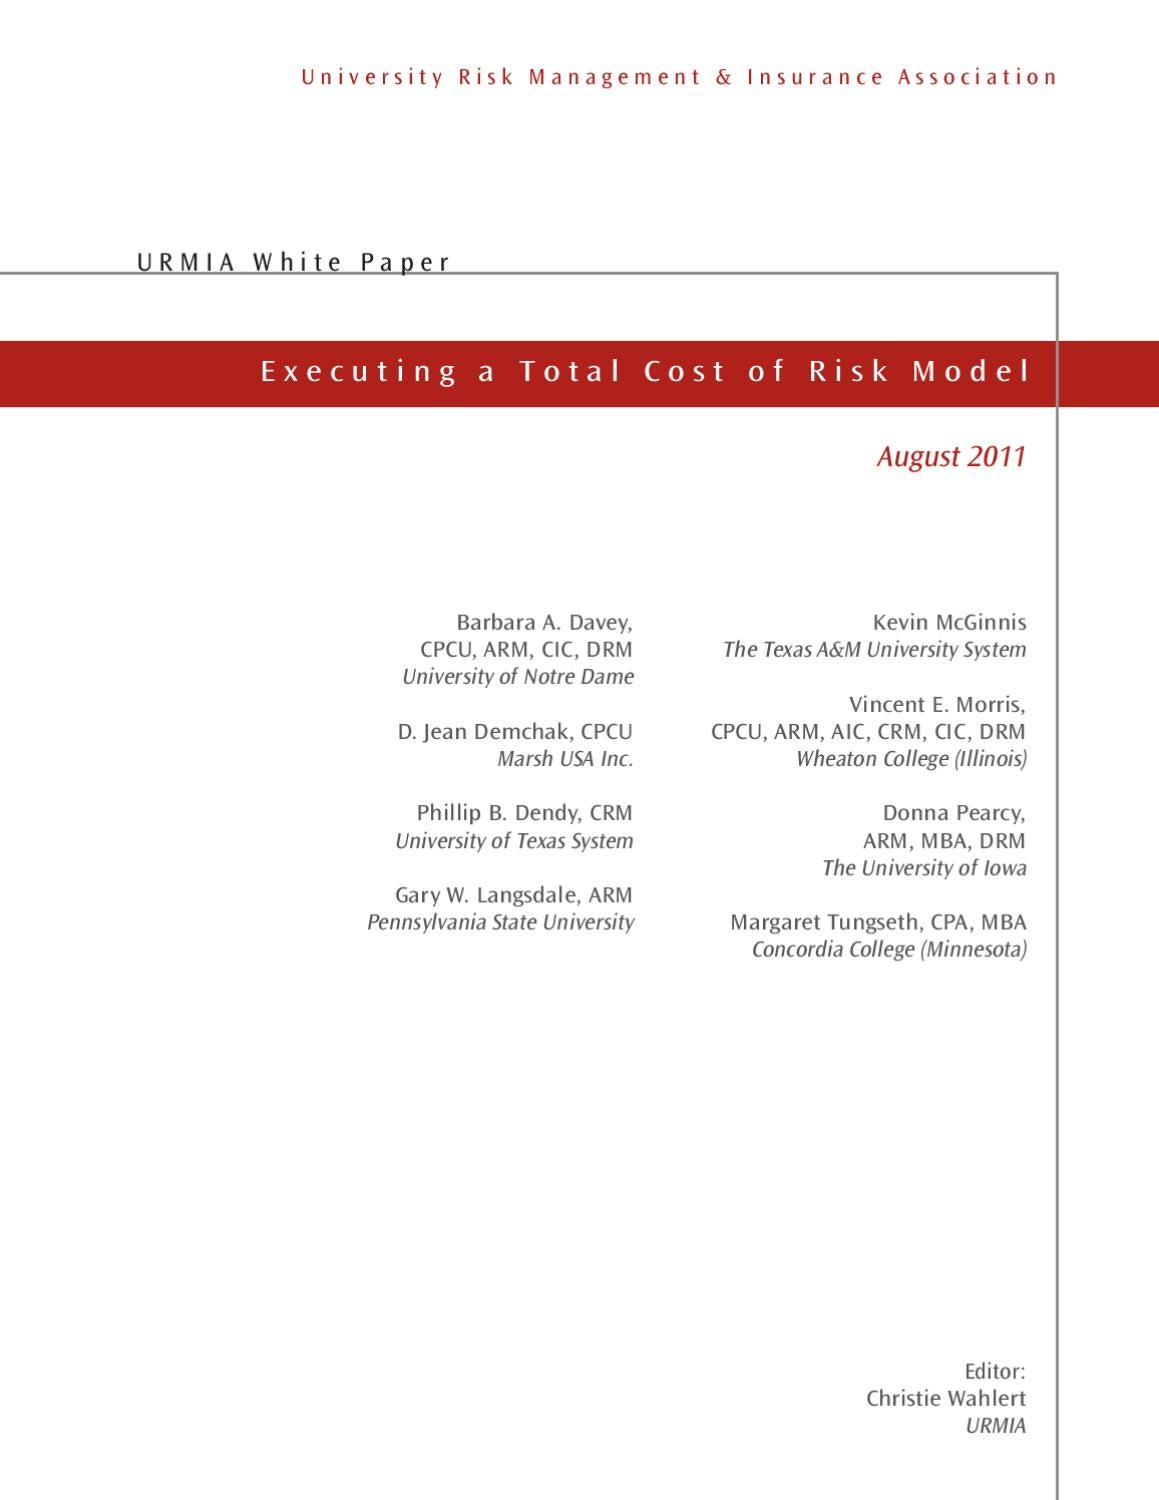 worksheet Total Cost Of Risk Worksheet urmia white paper executing a total cost of risk model by issuu